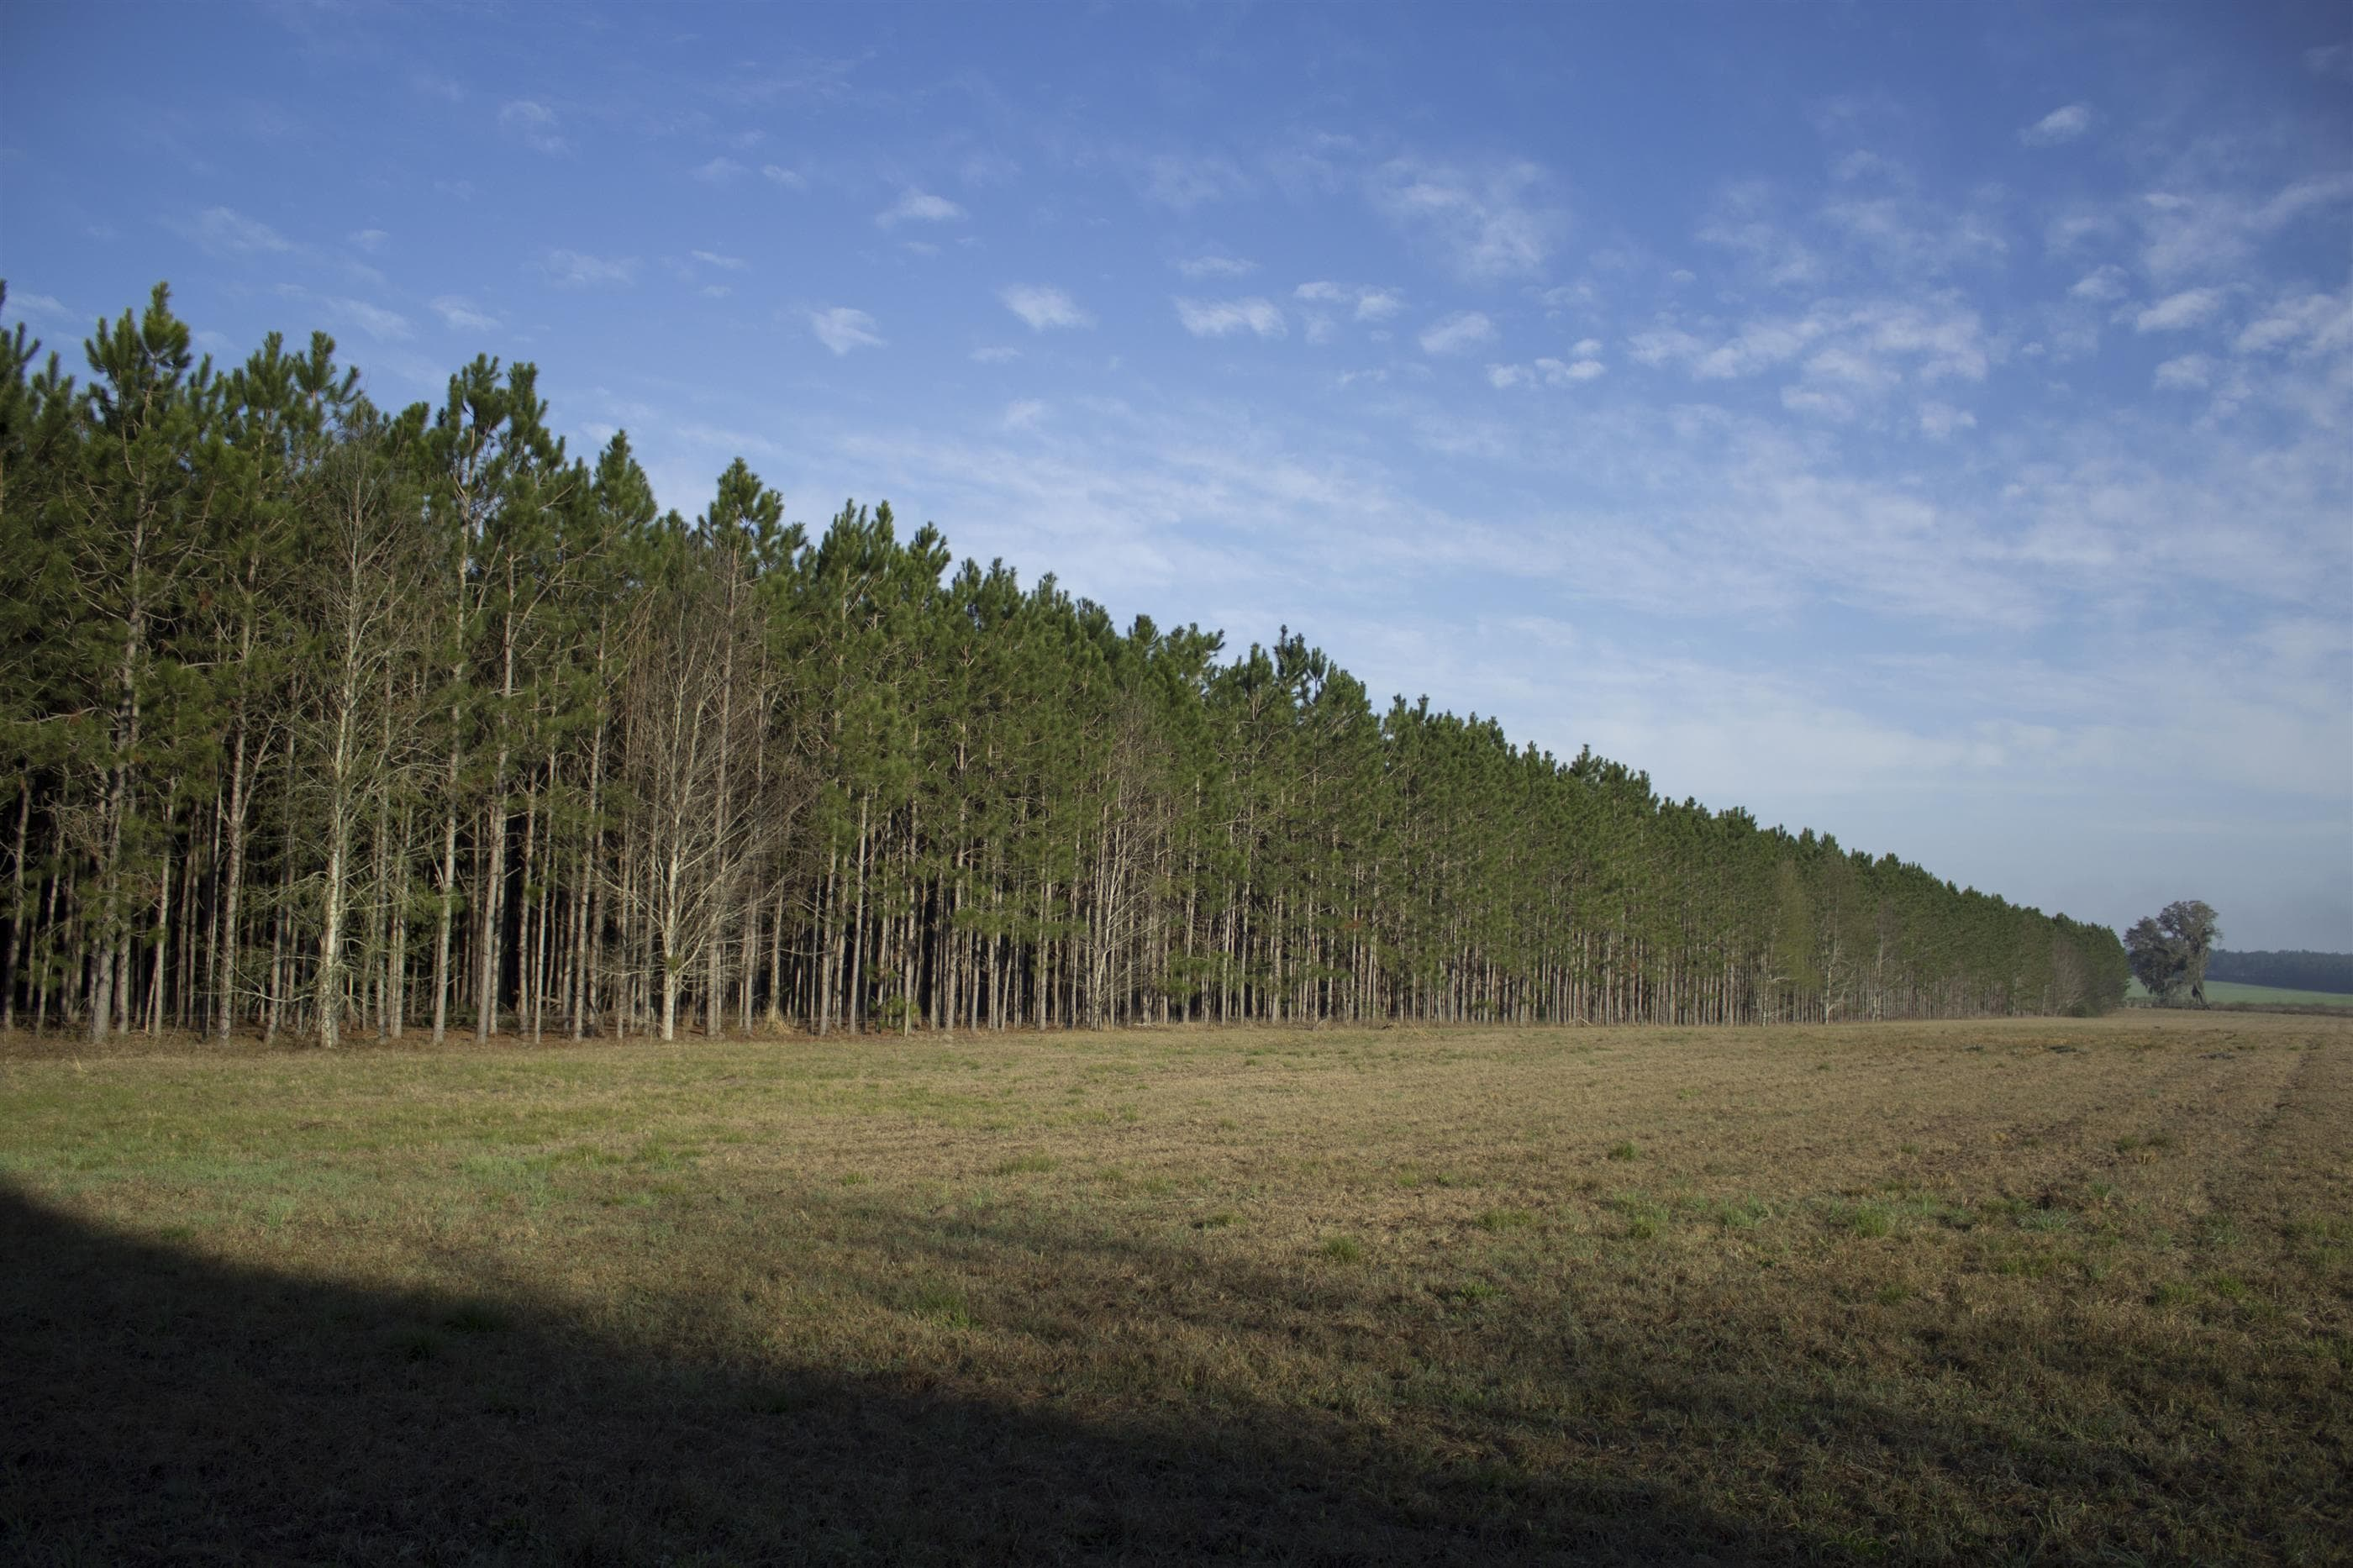 Pasture and pine trees on land in North Florida for sale